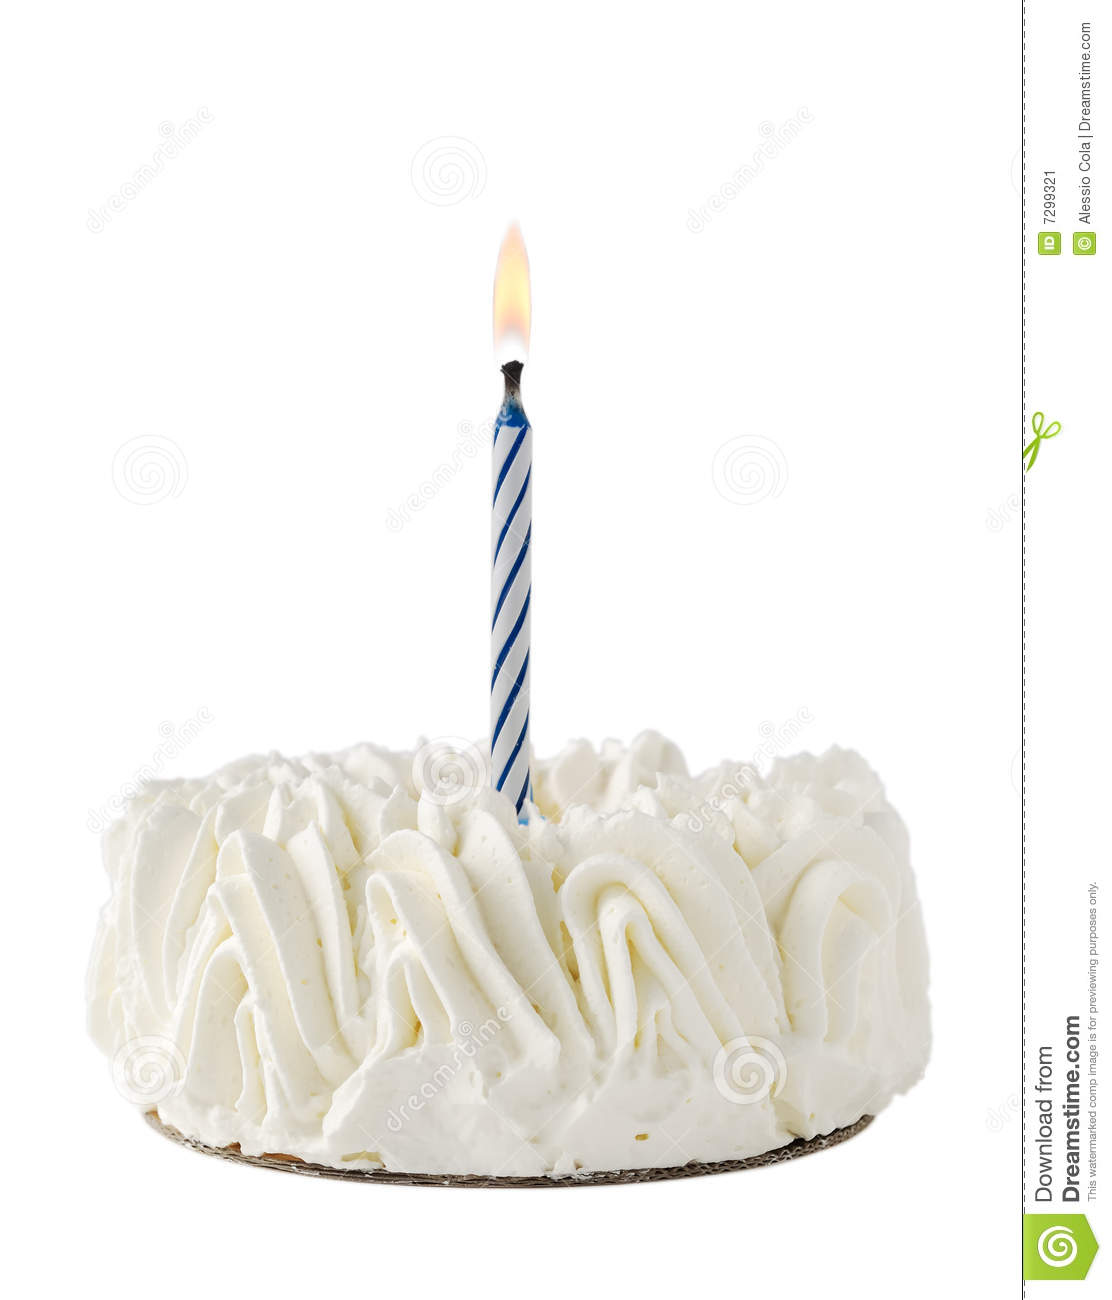 Image Of Birthday Cake With One Candle : Happy Birthday Cake Whit One Blue Candle Stock Image ...